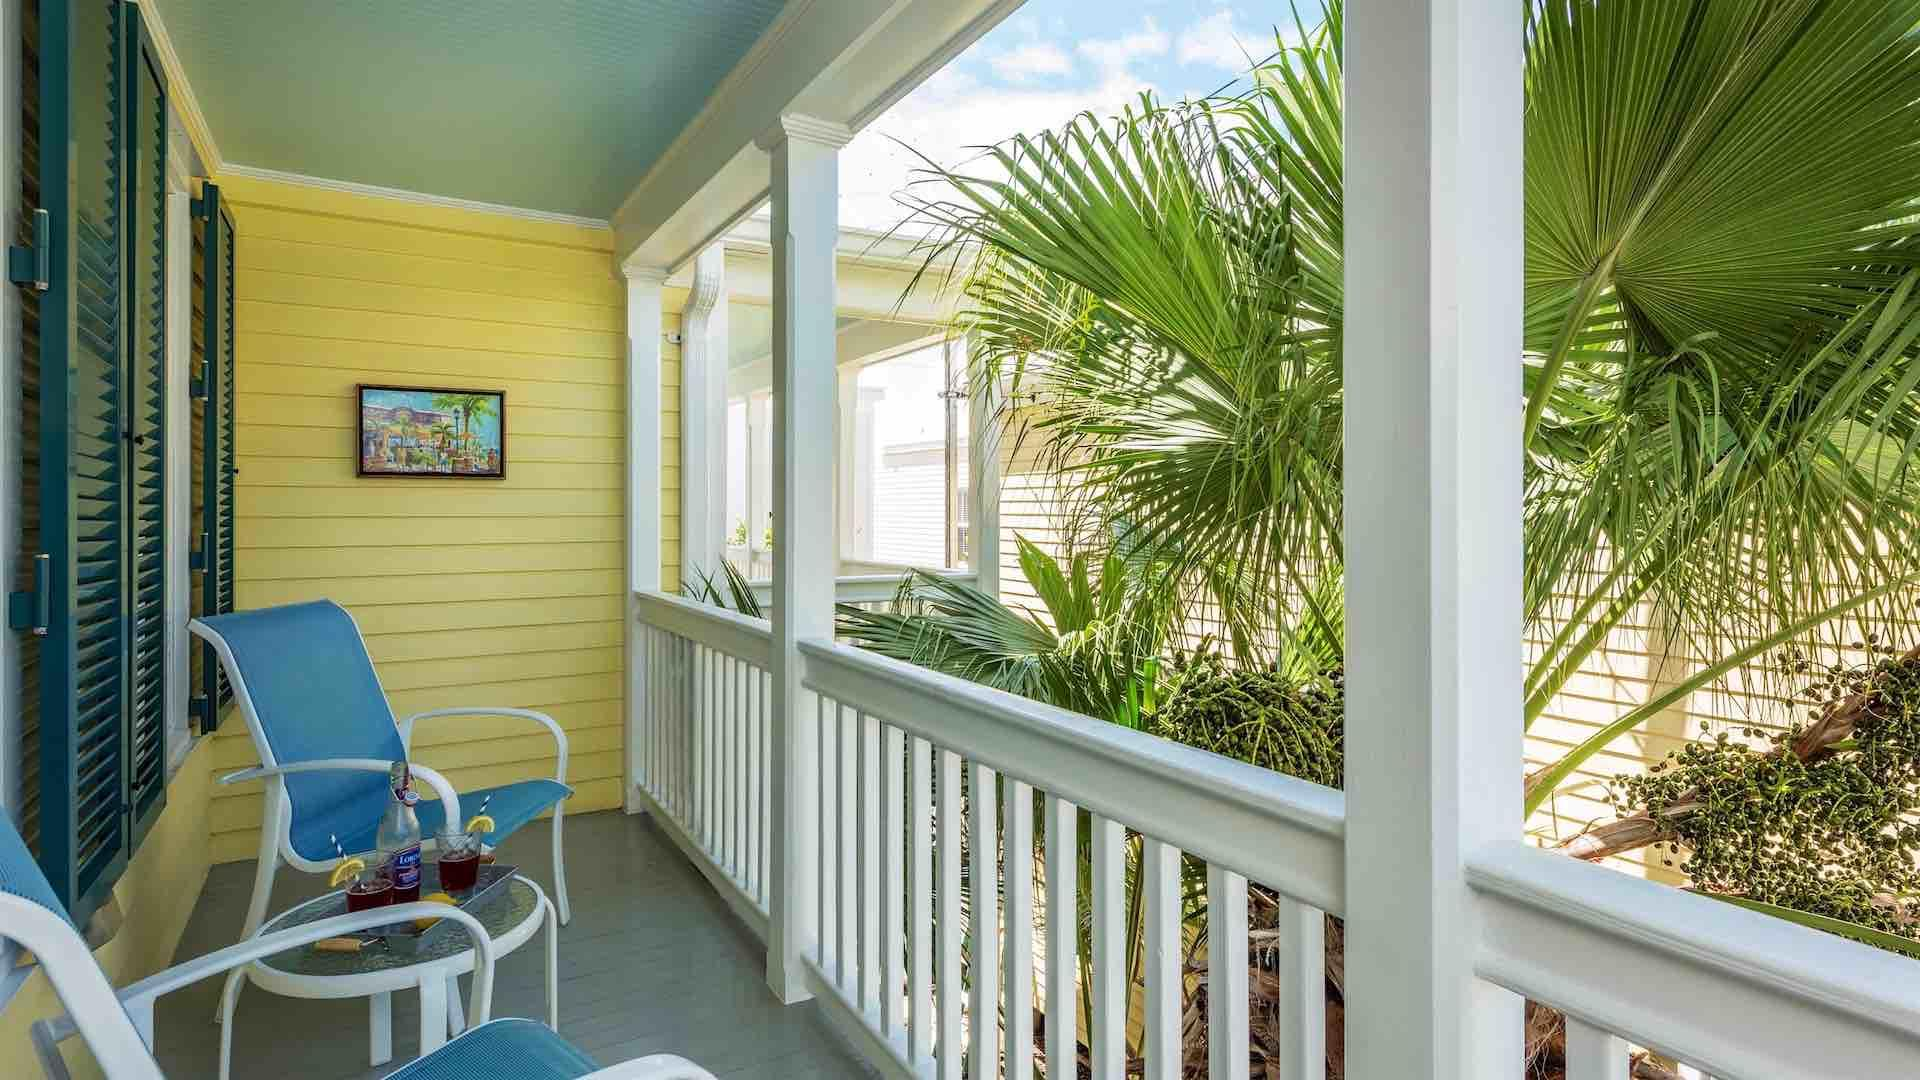 The front balcony has a 3-piece bistro set and overlooks the pool...